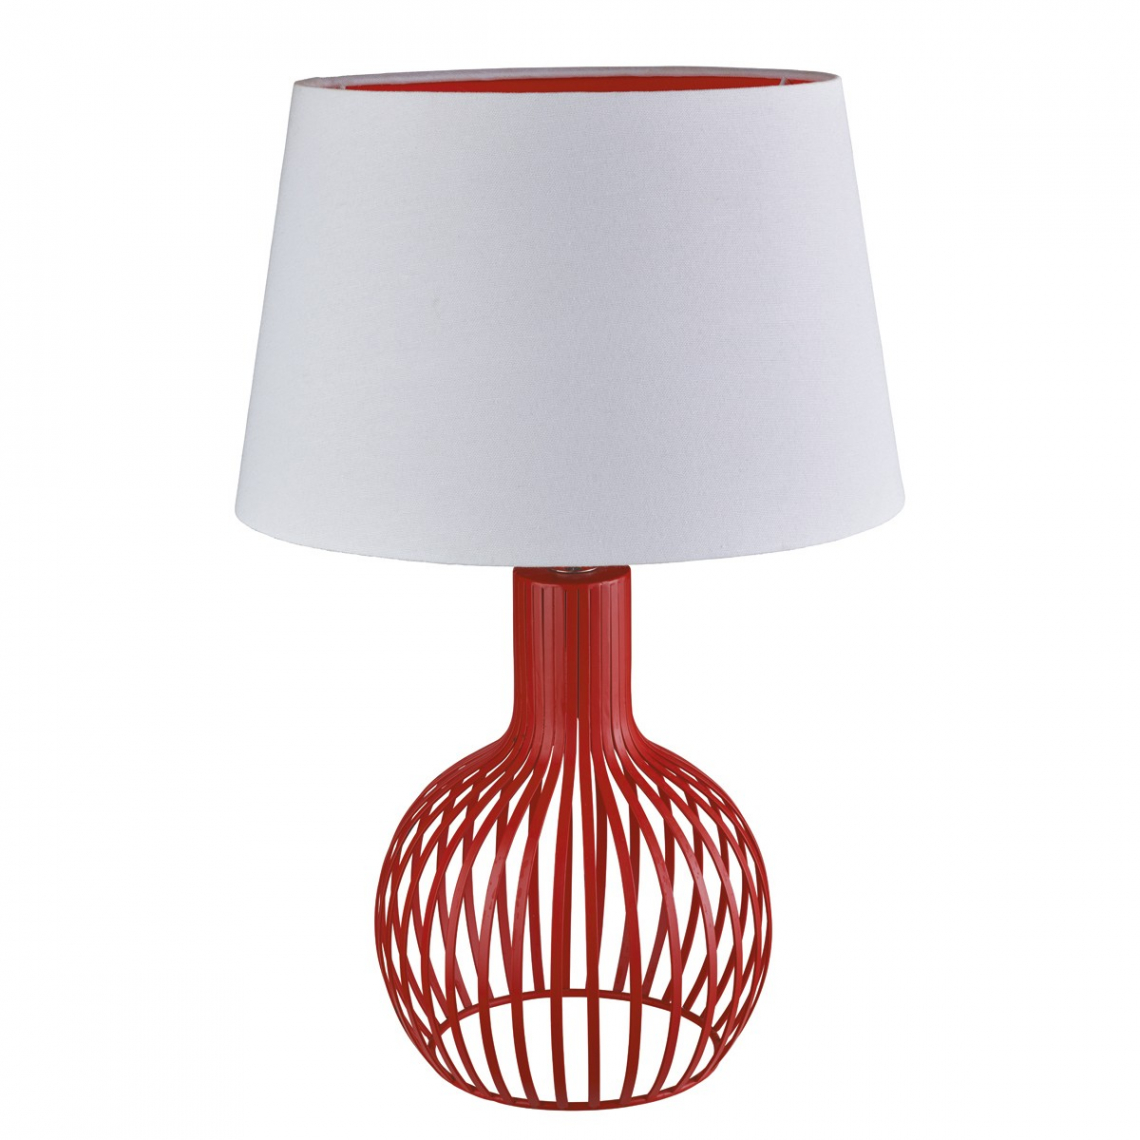 Table lamps lamps lighting modish furnishing cage red table lamp with white shade red inner mozeypictures Gallery